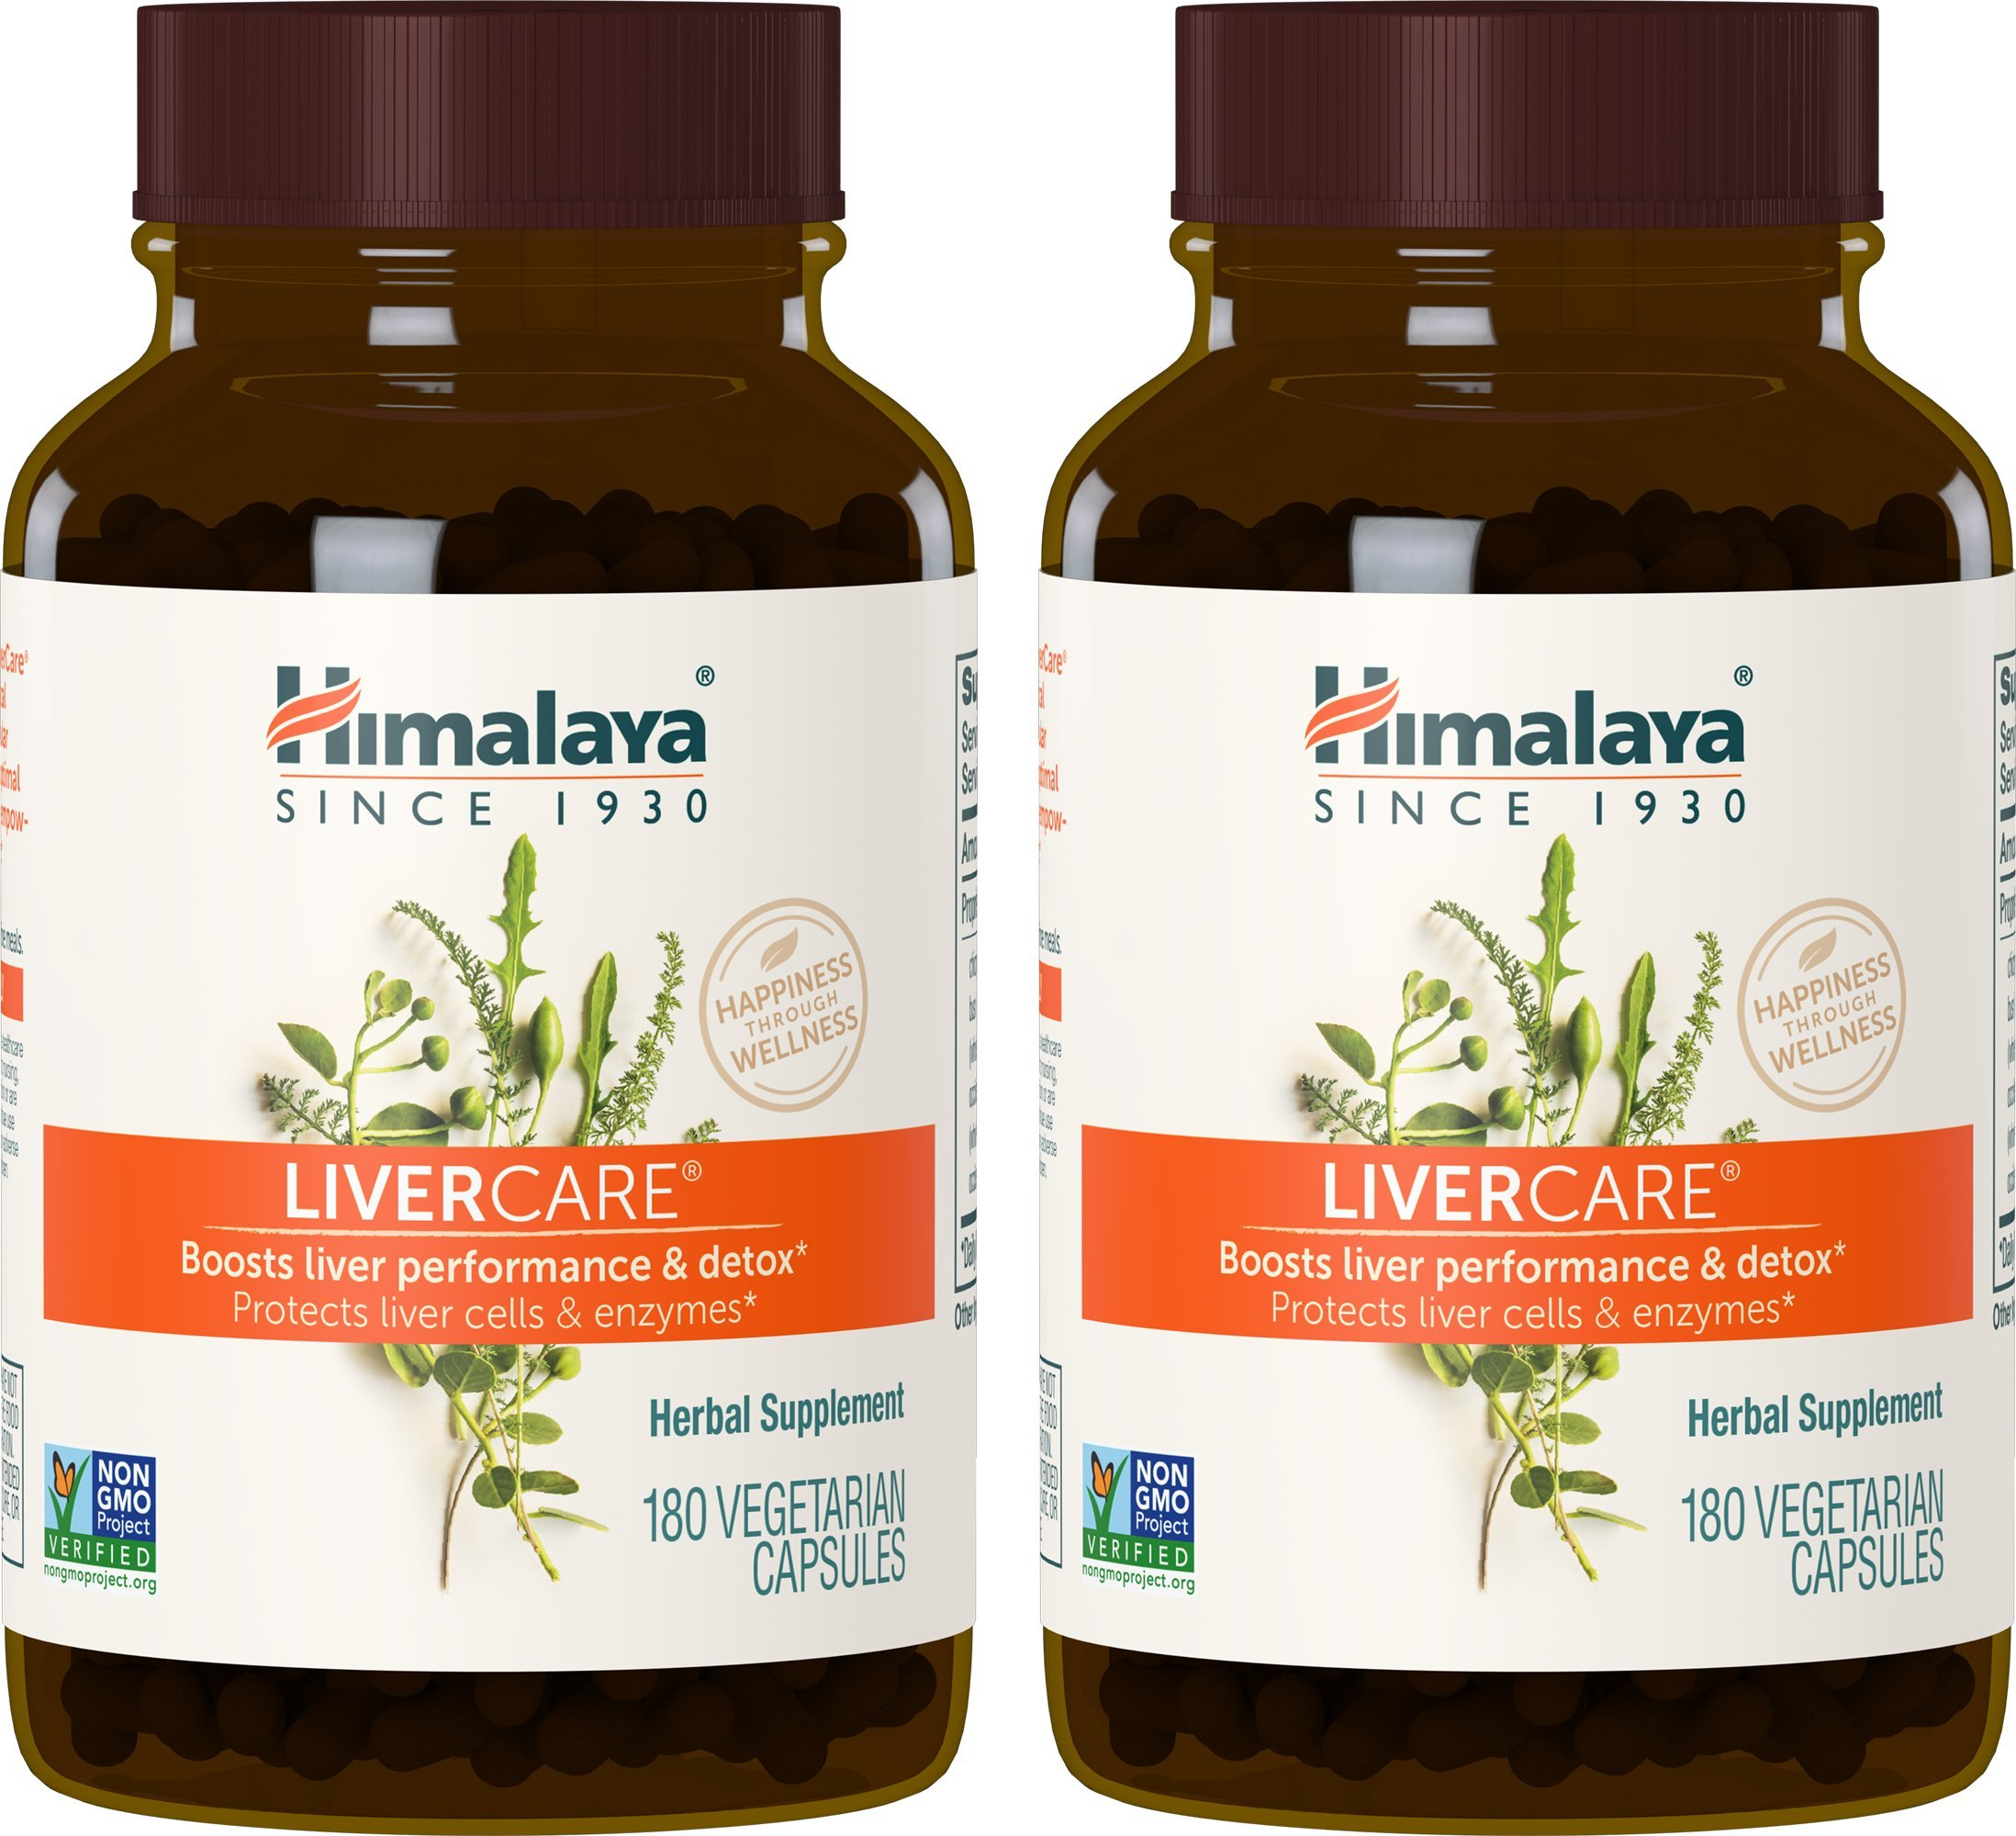 Himalaya LiverCare (2 Pack) 180 VCaps for Liver Detox, Liver Cleanse and Regeneration 375mg by Himalaya Herbal Healthcare